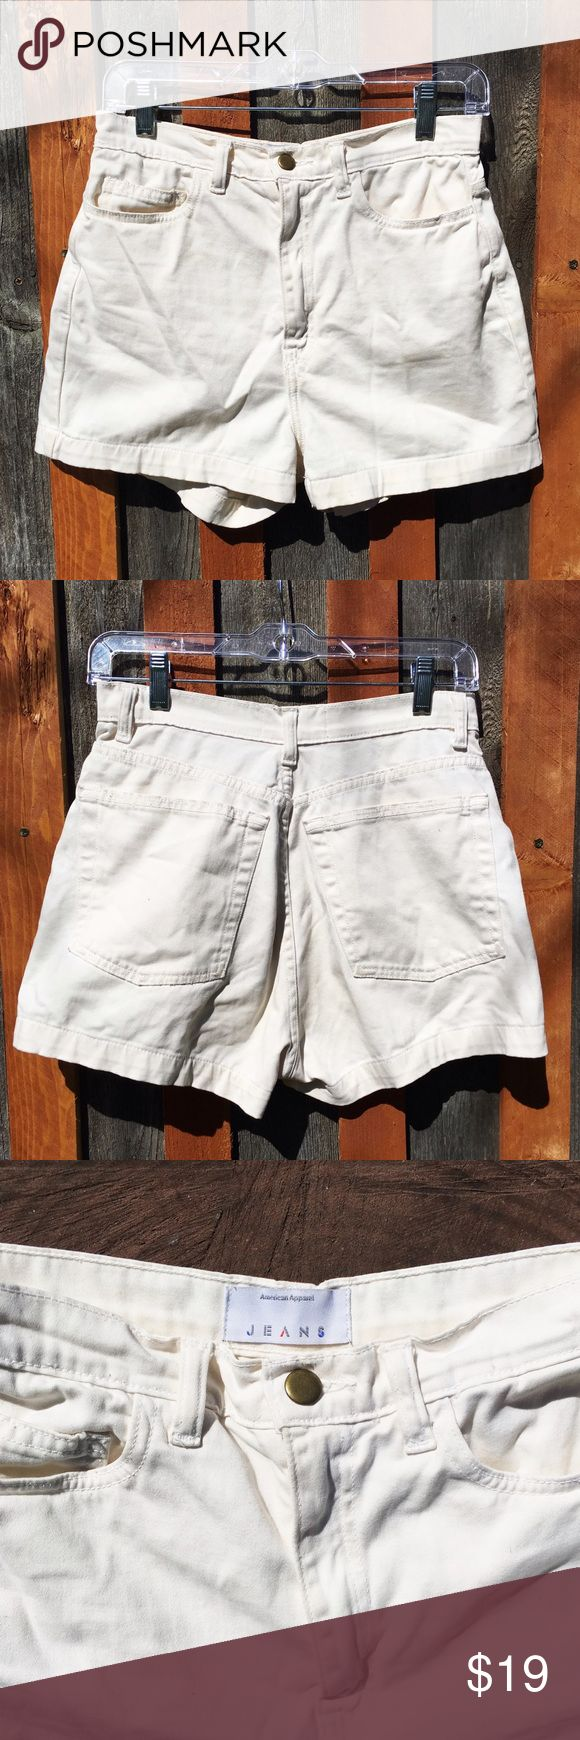 American Apparel High waist shorts 90's American Apparel High rise jean shorts in an Off-white color. Size 29.  Great fit, not too stiff like most AA shorts.  Perfect for spring or summer beach weather 🌴🌊 Message me if you have any other sizing questions   #americanapparel #vintage #90s #shorts #highrise #denim #white #summer #sale #jeans American Apparel Shorts Jean Shorts